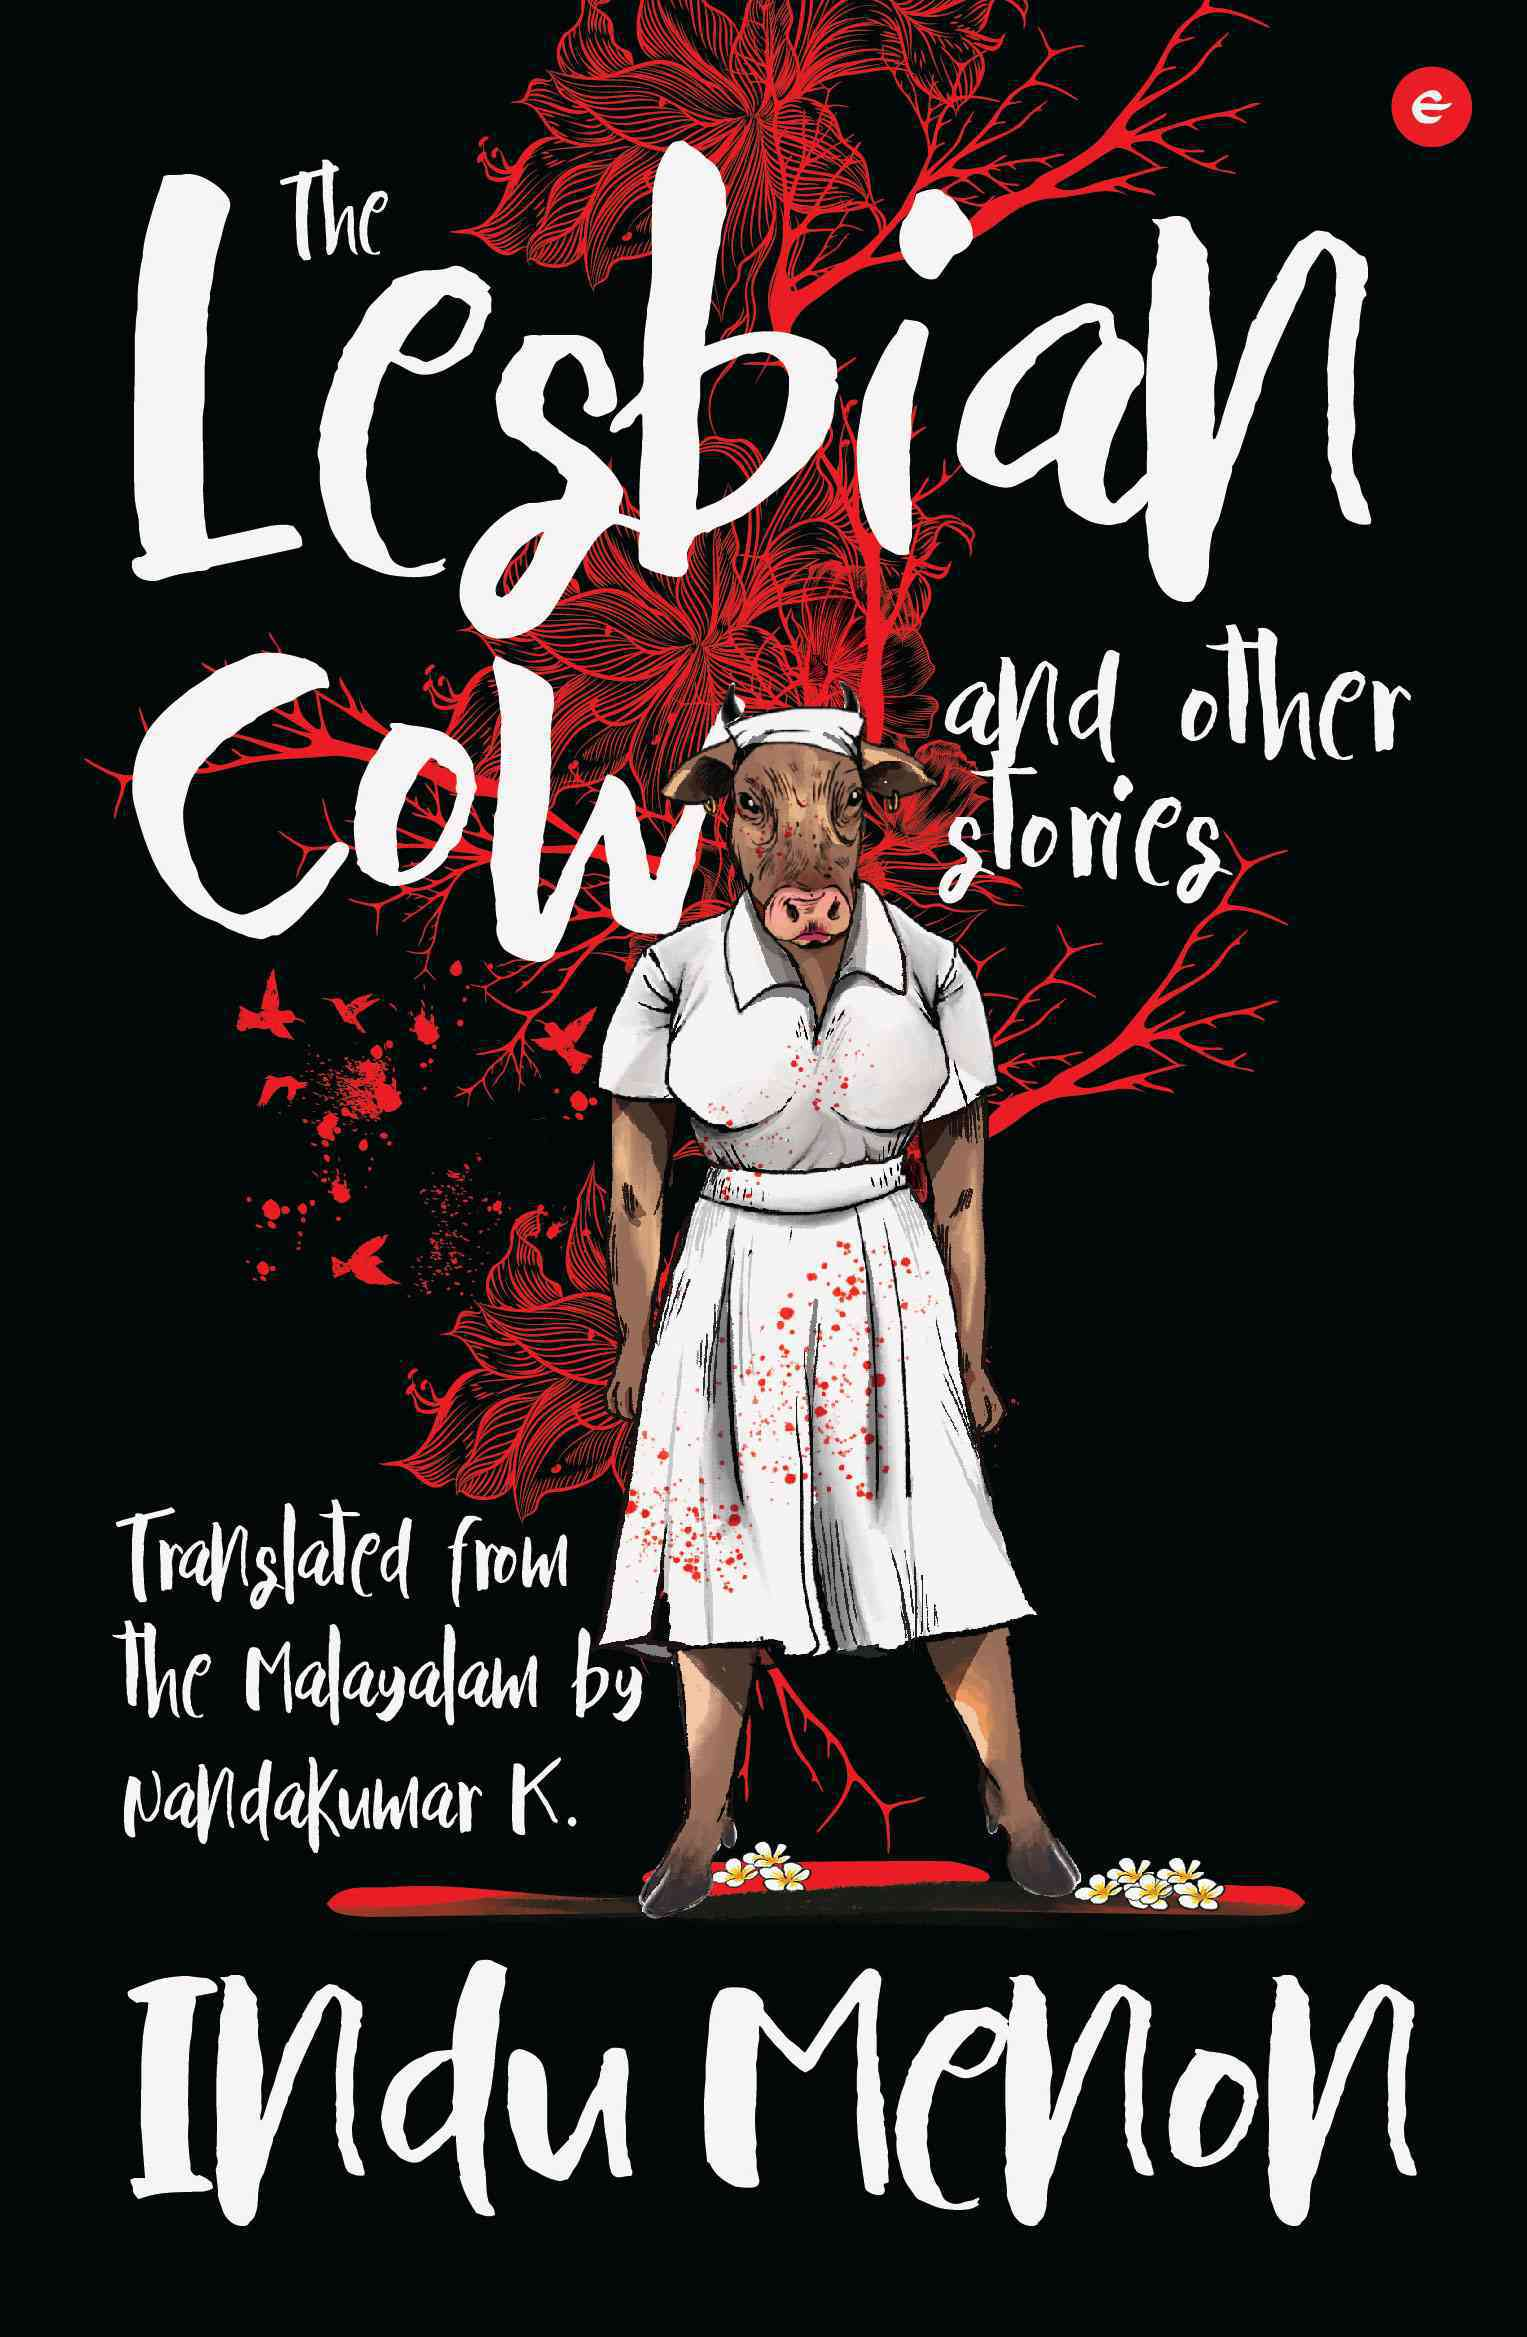 The Lesbian Cow and Other Stories